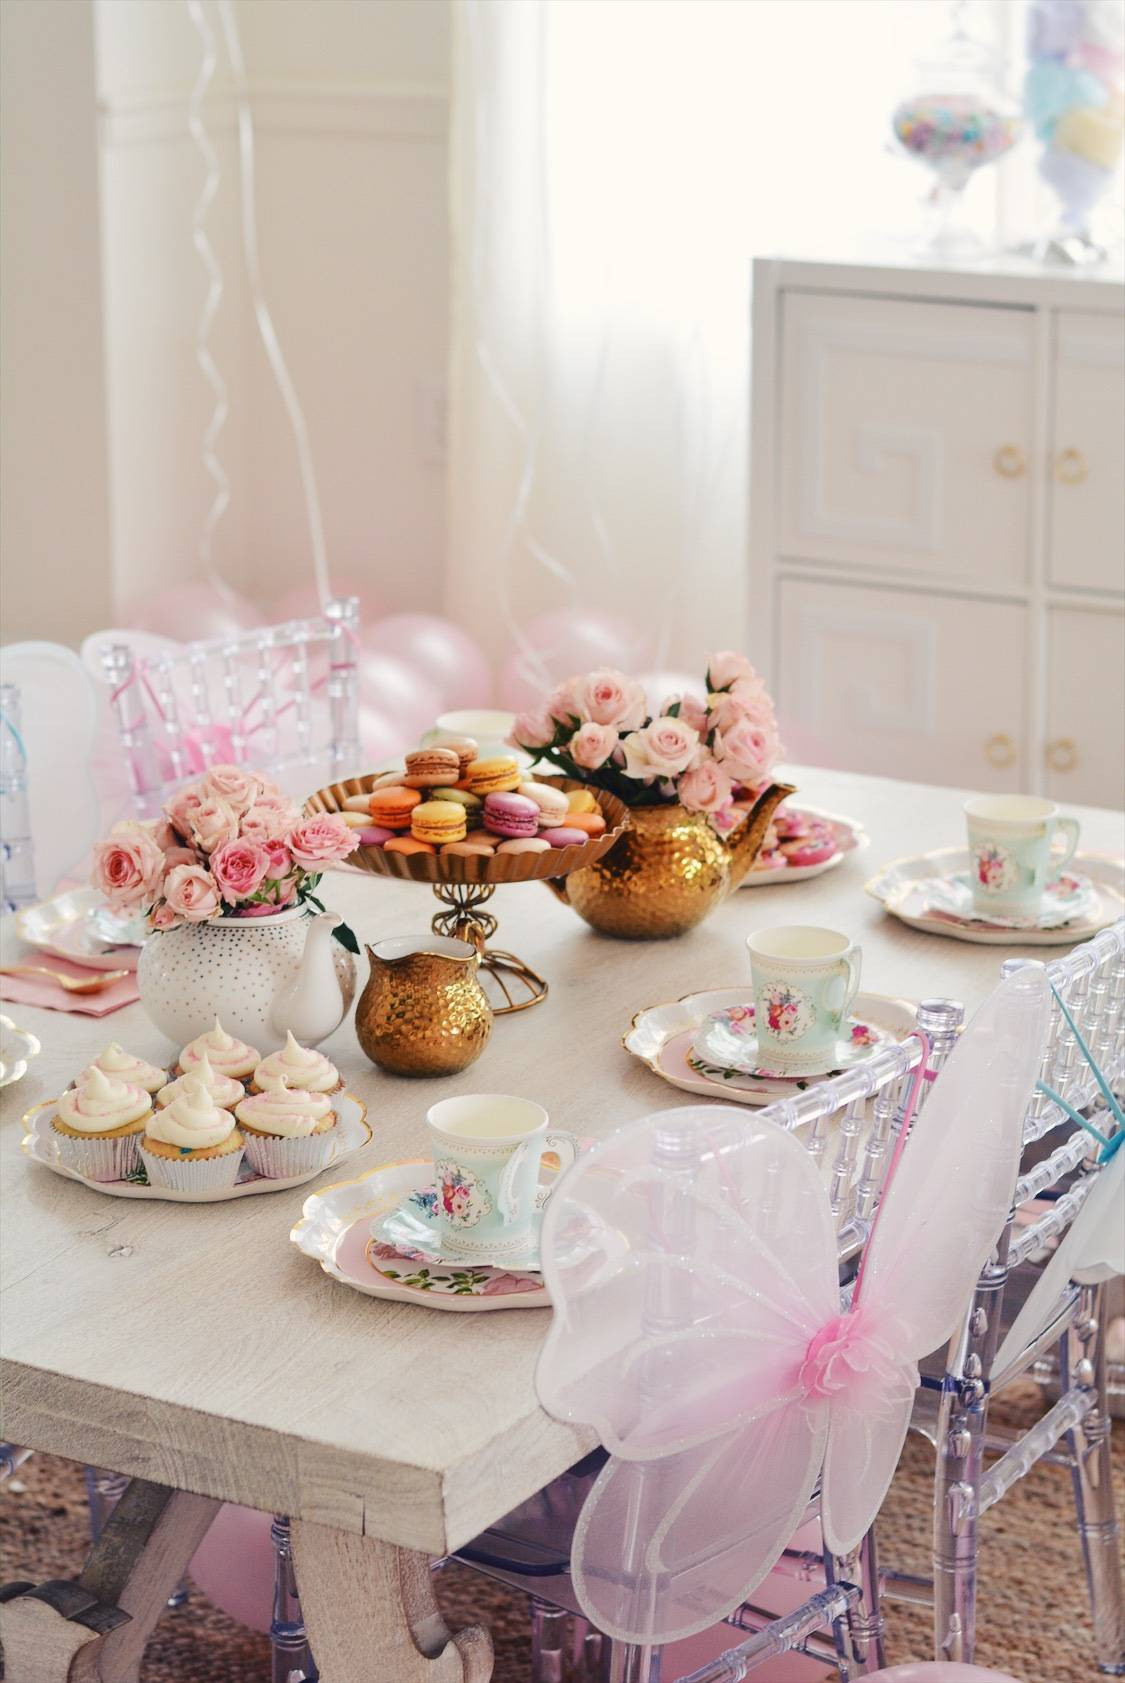 Princess Tea Party Birthday Ideas  Princess Tea Party Birthday Party Ideas for a 3 Year Old